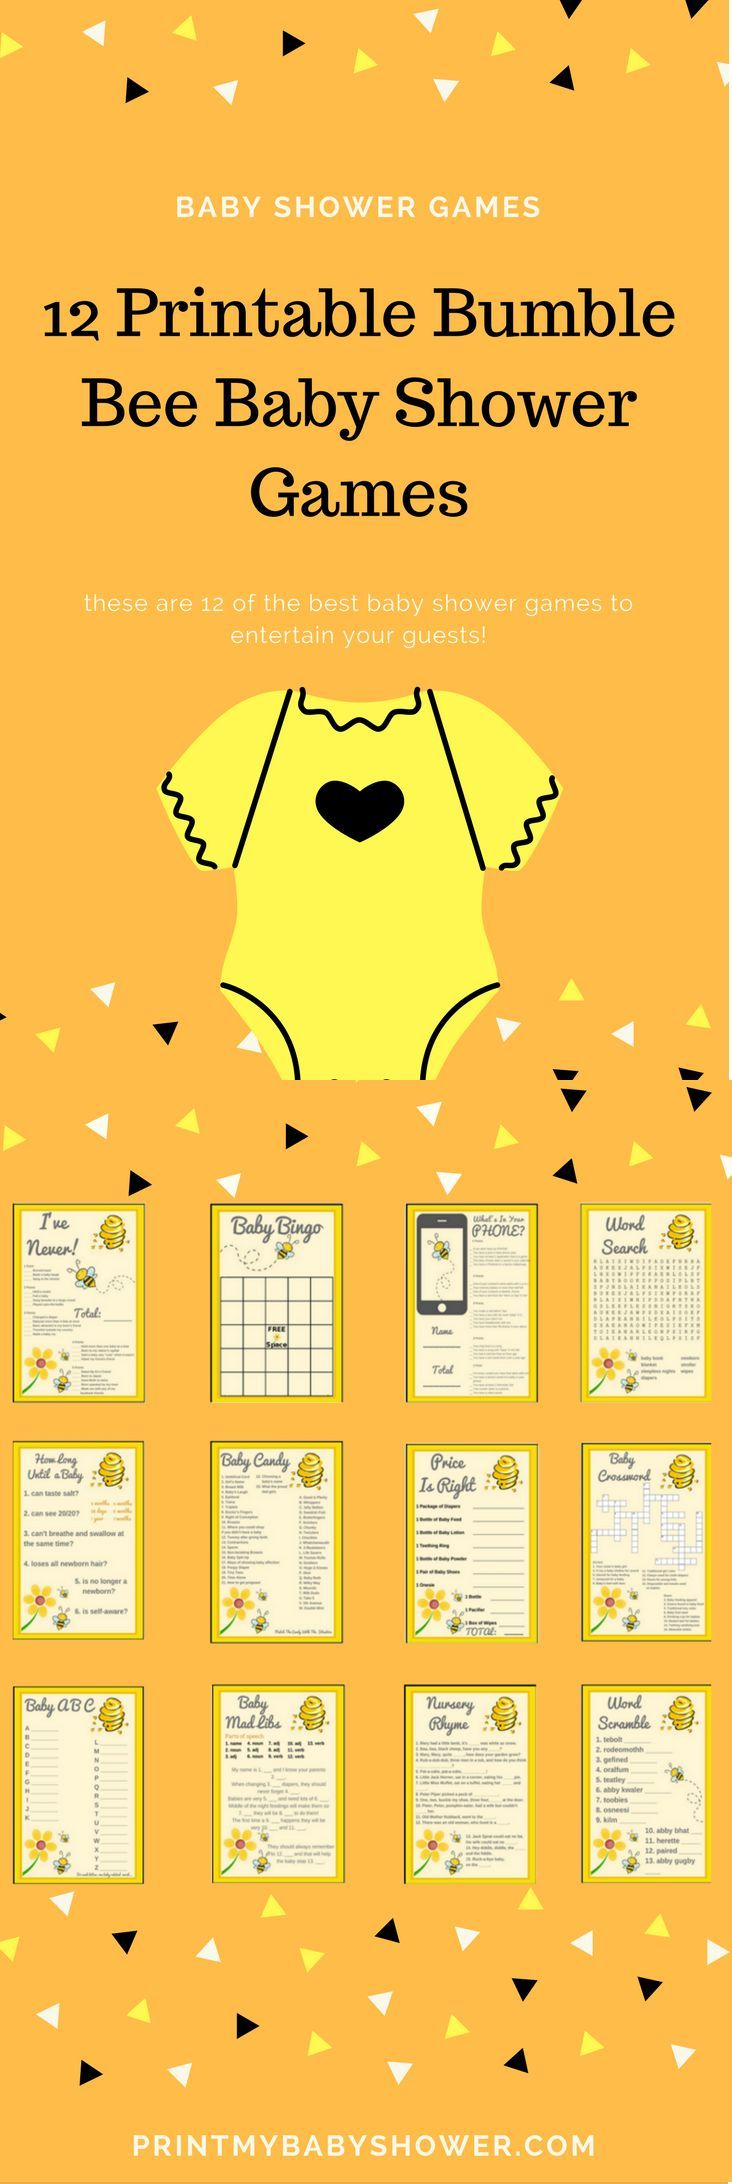 printable baby shower games | printable baby shower games for boys | printable baby shower games templates | bumble bee baby shower theme | bumble bee baby shower ideas